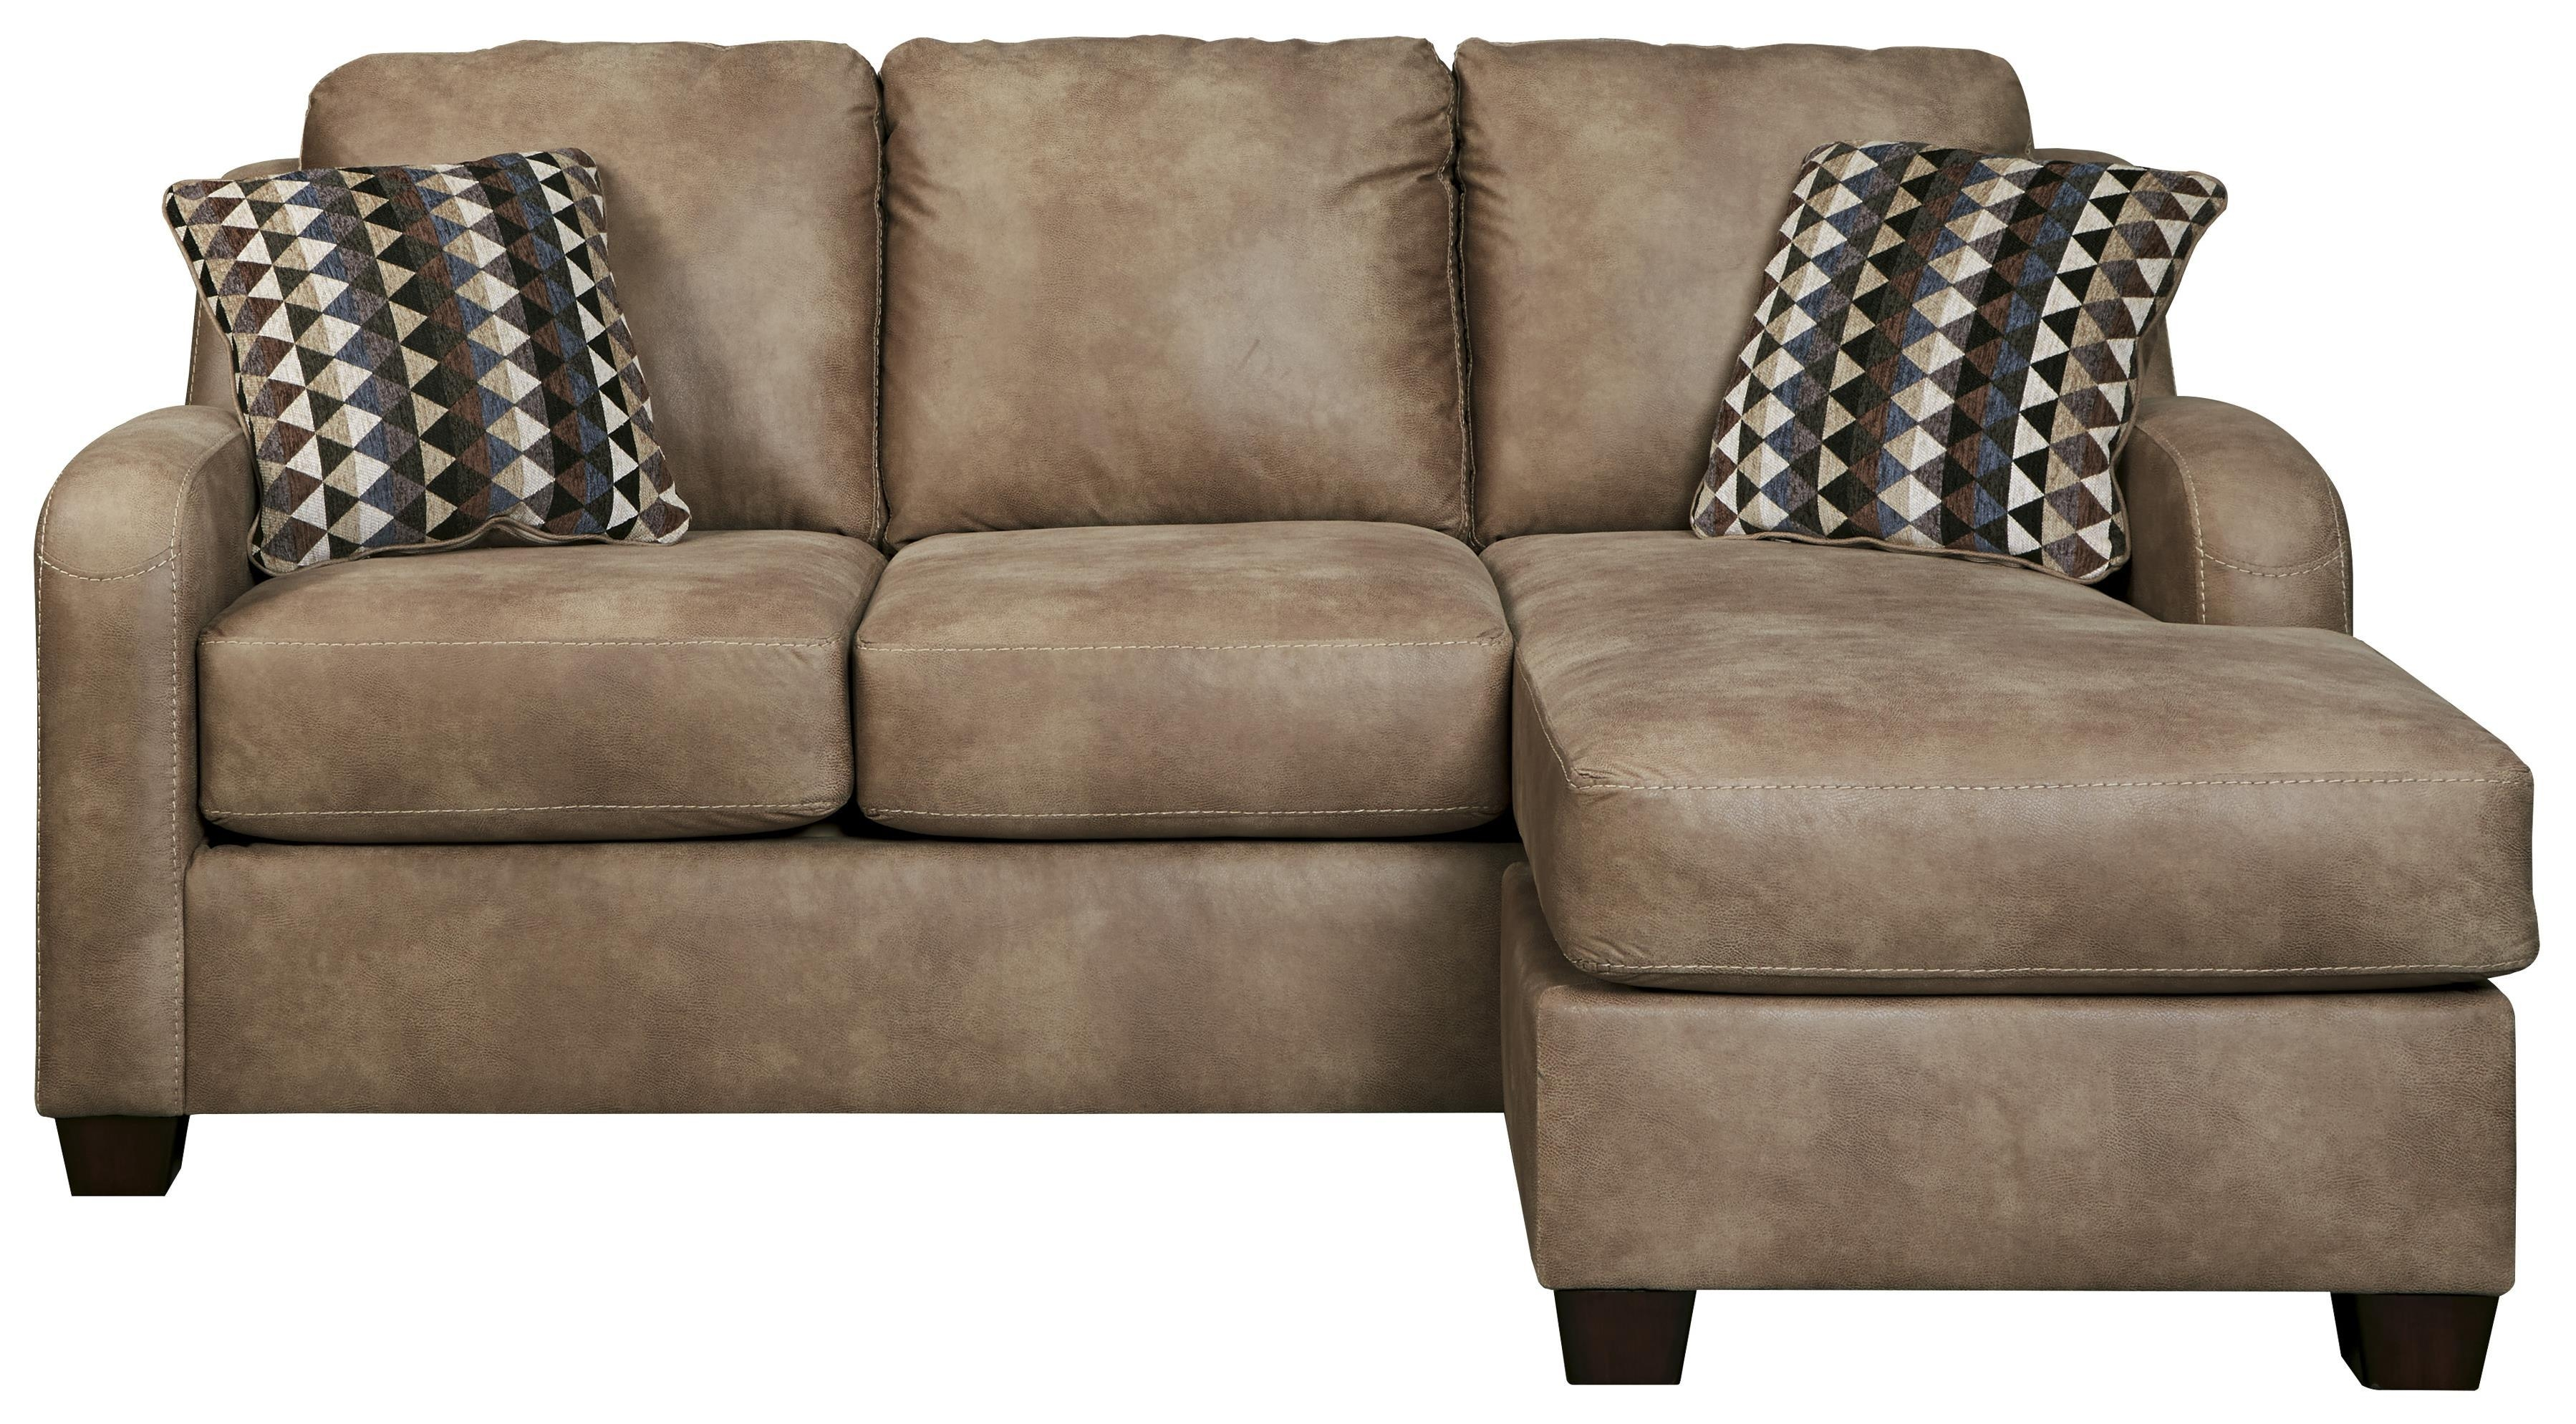 Benchcraft Alturo Contemporary Faux Leather Sofa Chaise – Dunk Throughout Smith Brothers Sofas (View 15 of 20)